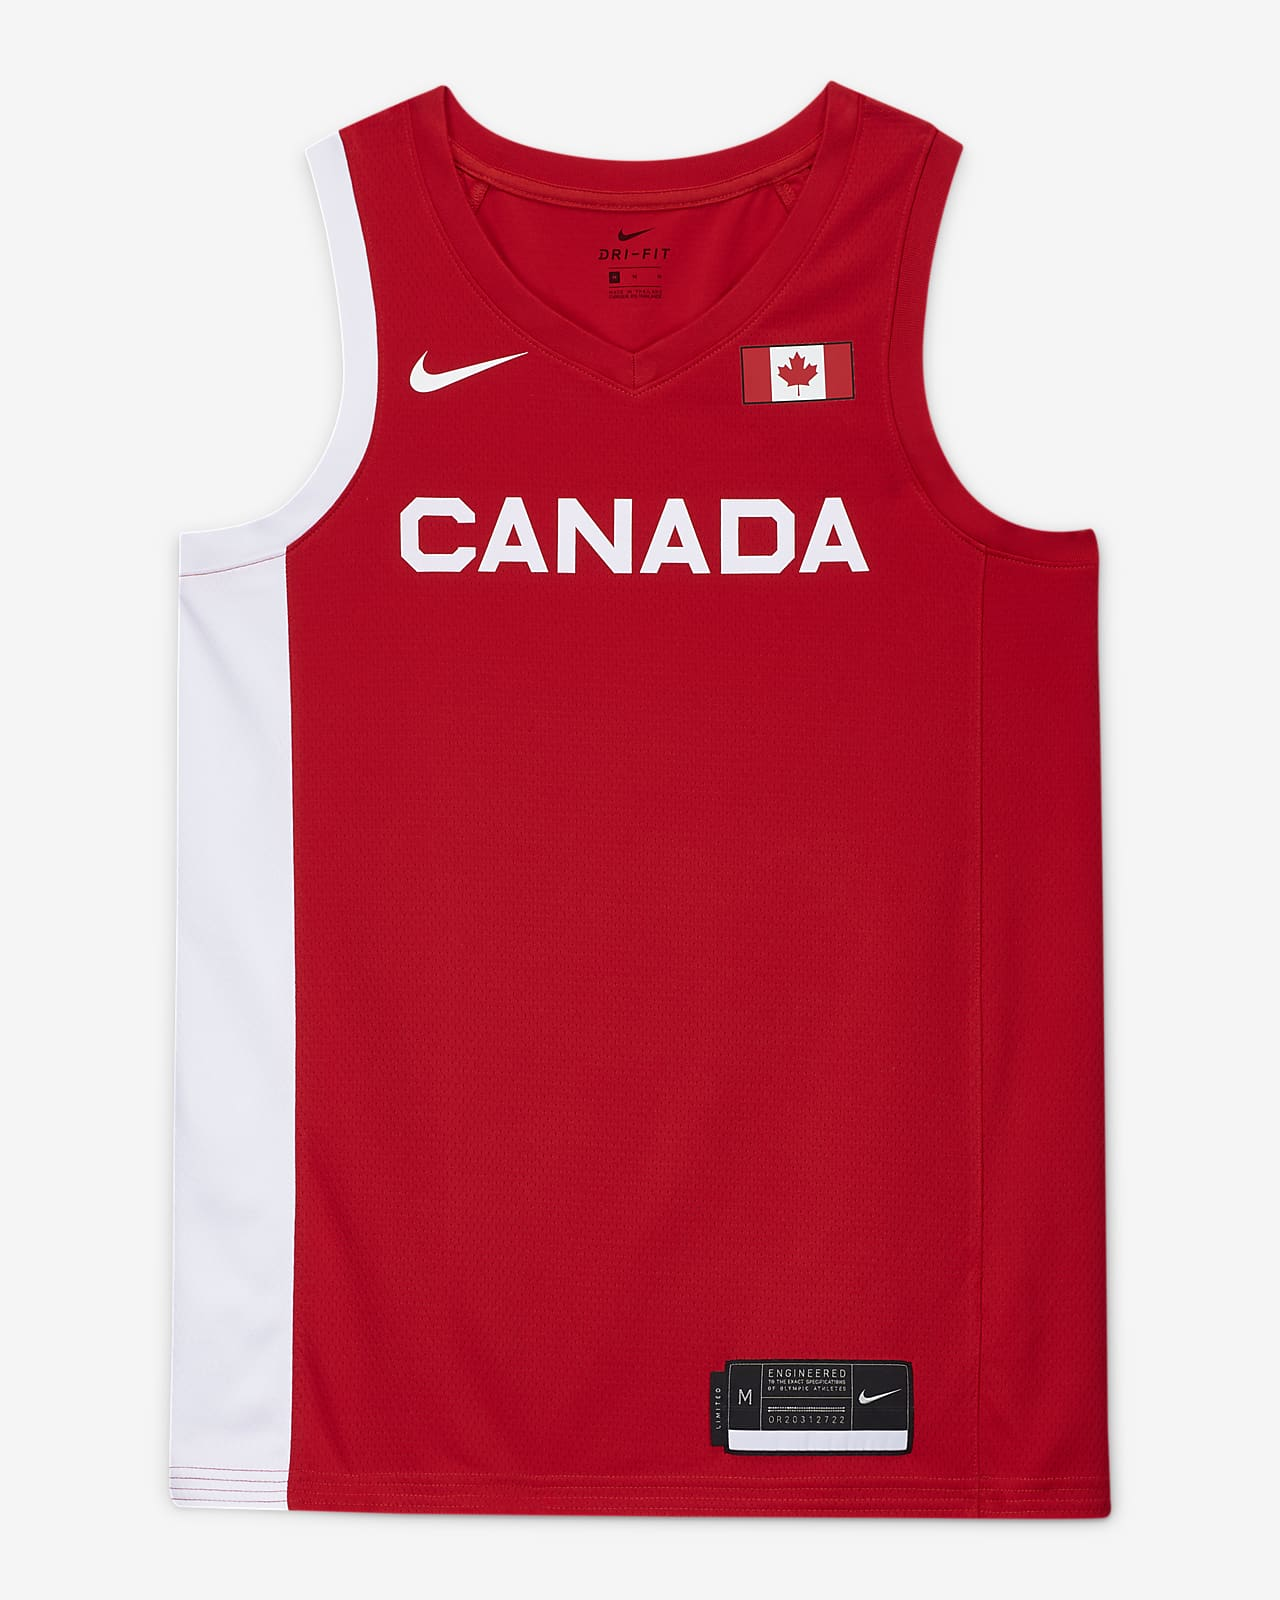 Canada Nike (Road) Limited Men's Basketball Jersey